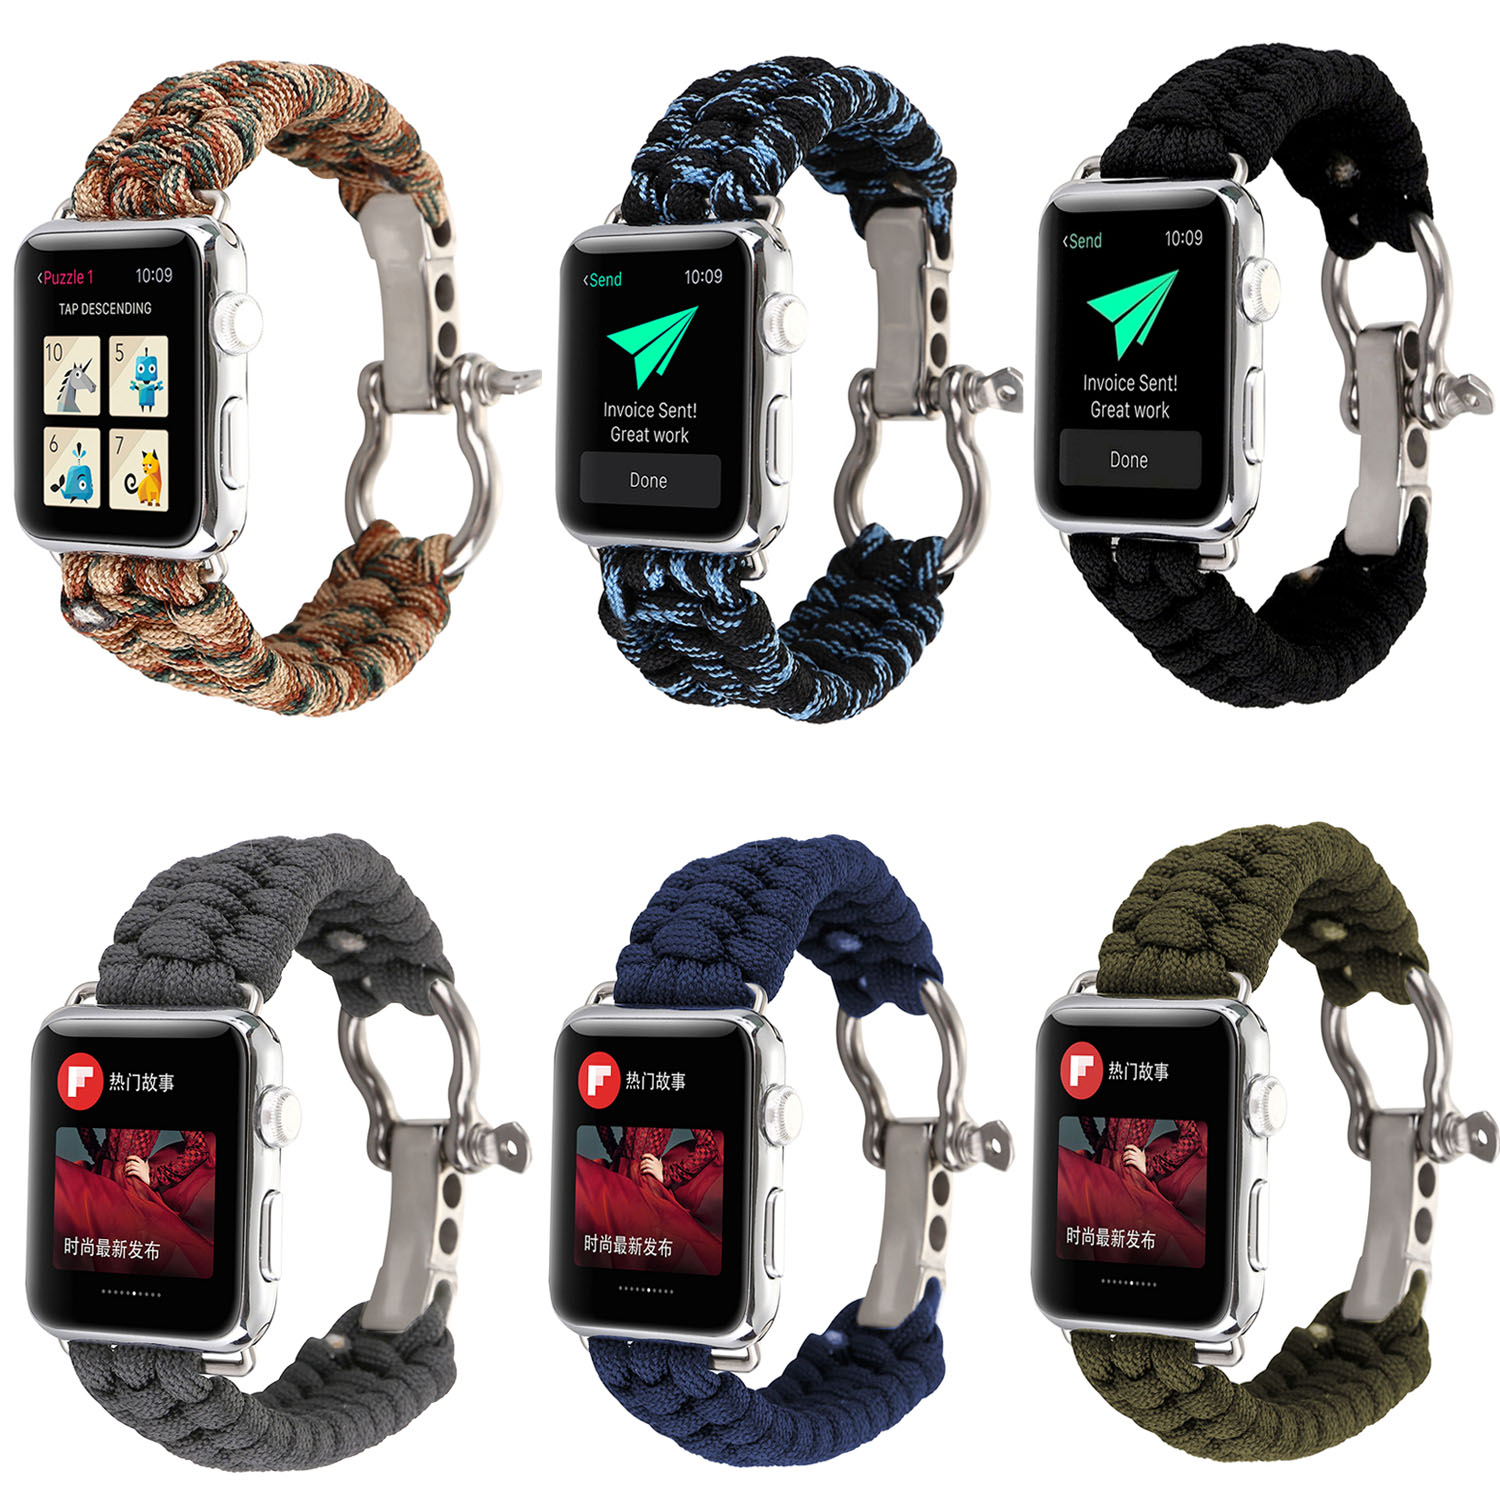 Outdoors Sports Wrist Strap For Apple Watch Band 42mm 38mm Survival Rope Metal Bolt Clasp Wristband